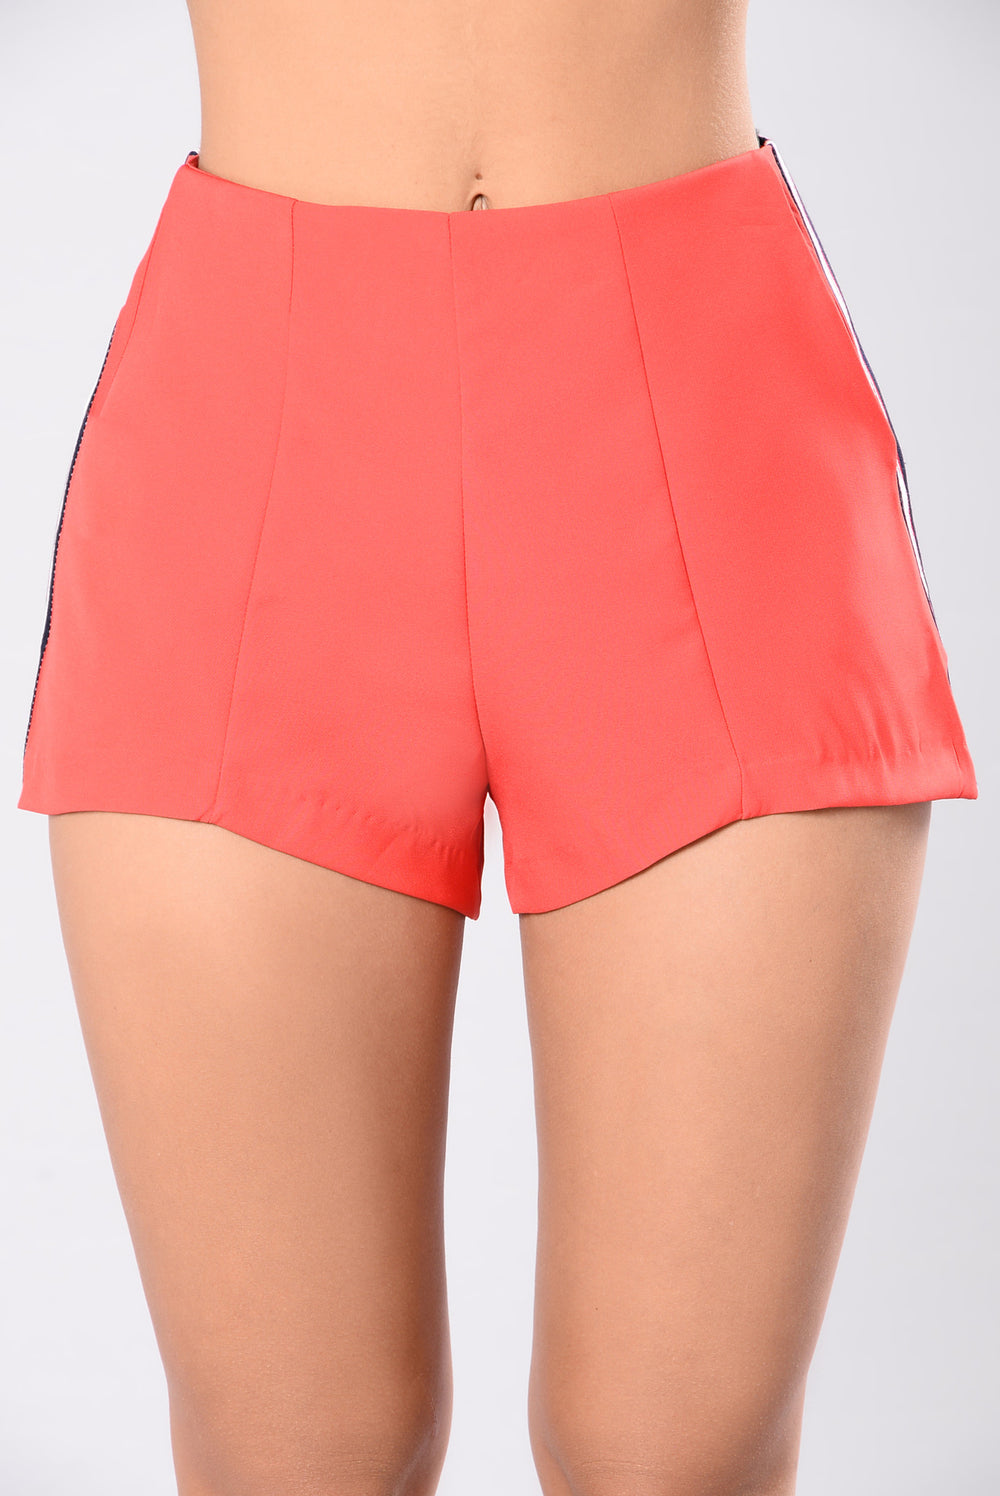 Catwalk Shorts - Red